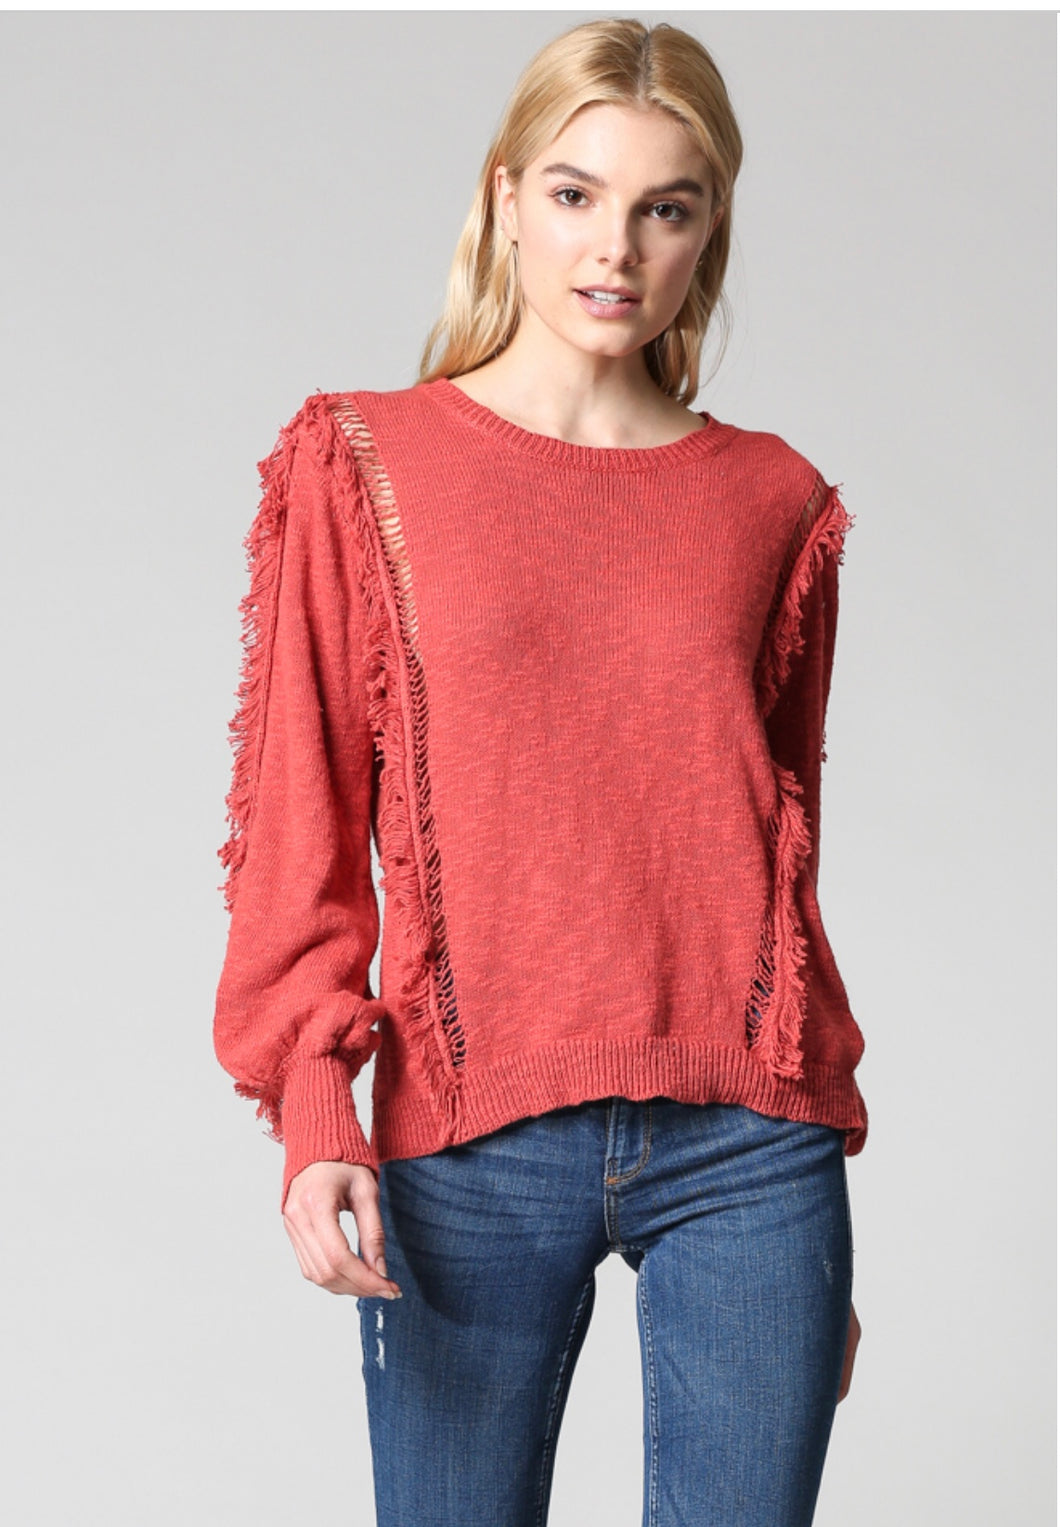 Light Weight Fringe Sweater